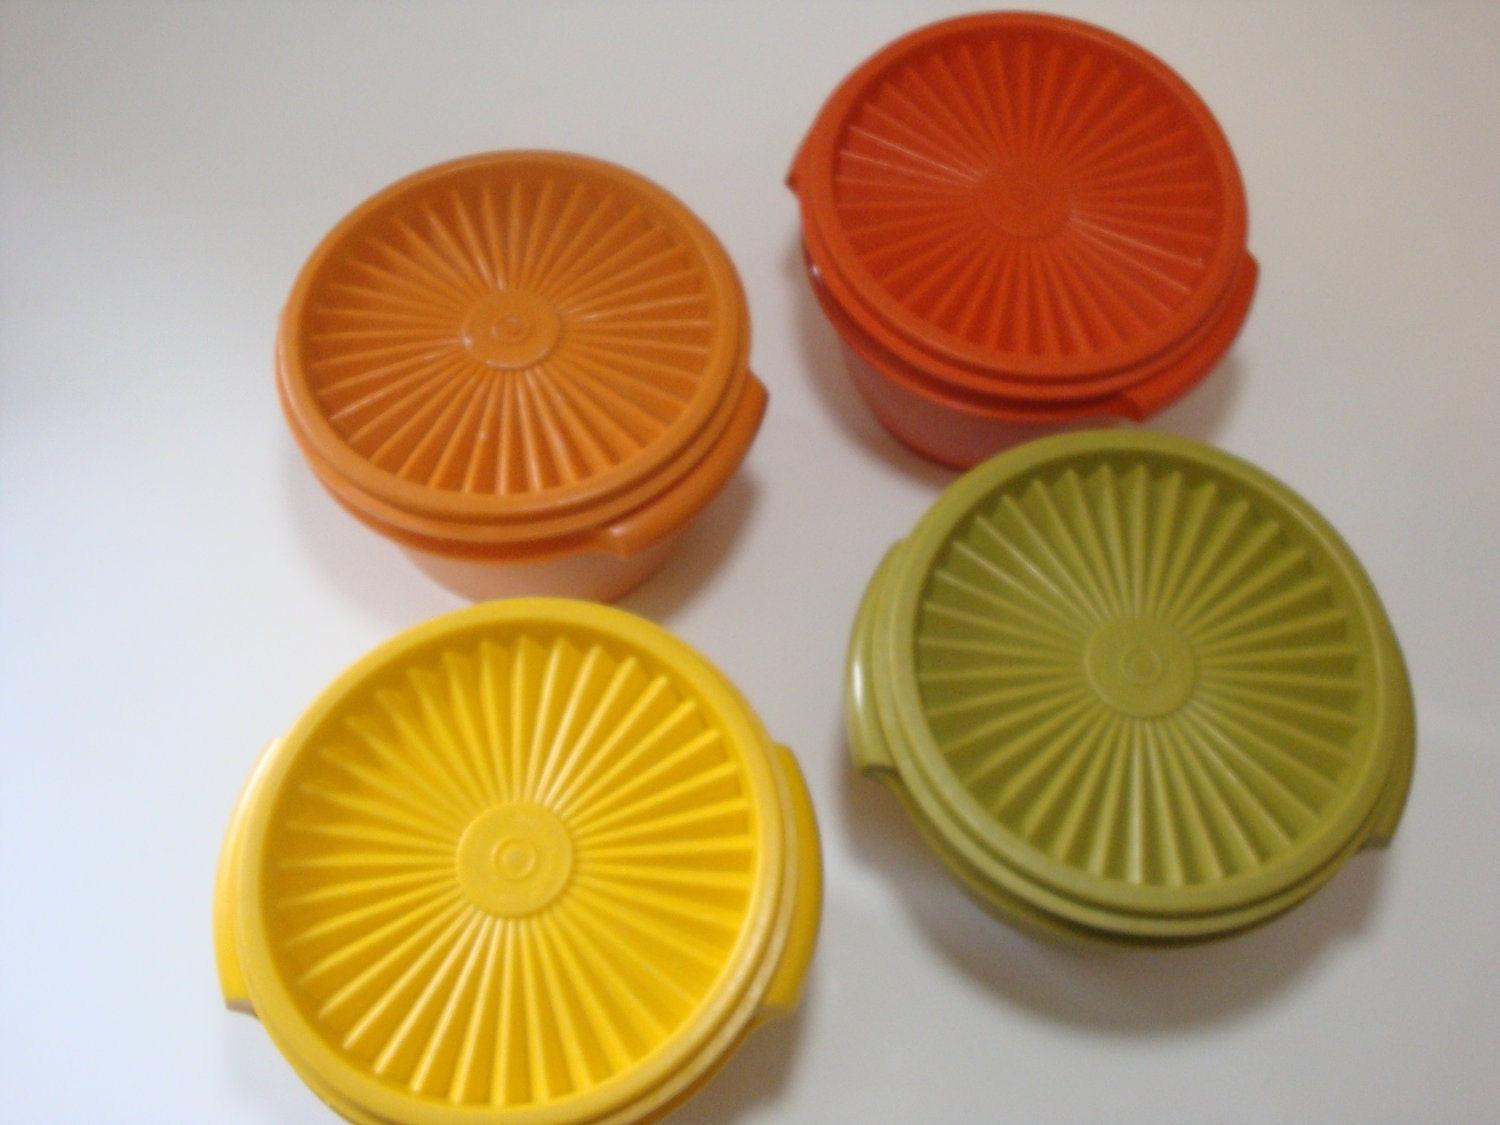 how to clean tupperware that has yellowed